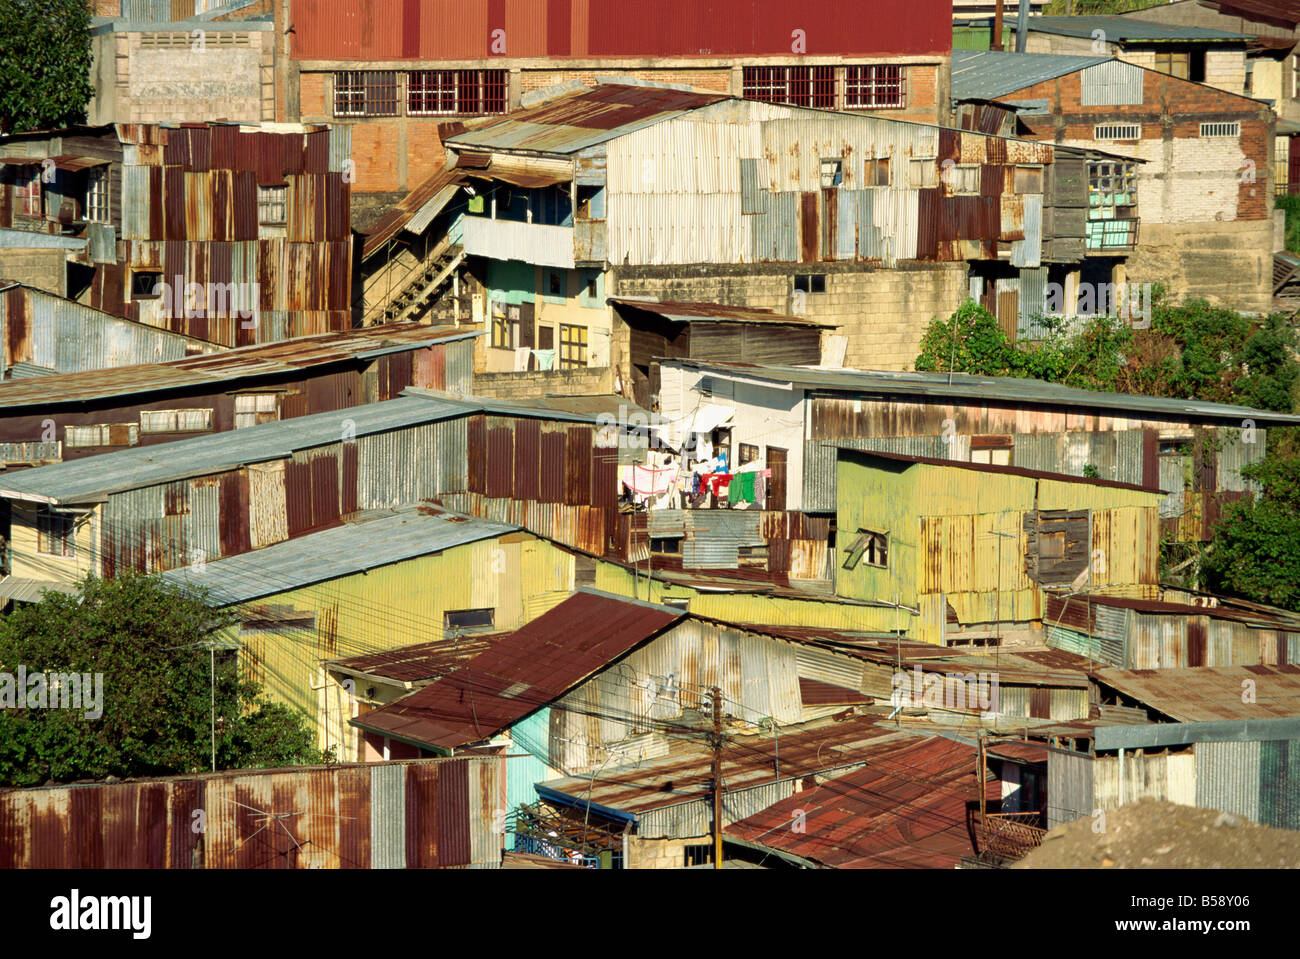 Corrugated iron buildings in a poor barrio north of the centre of San Jose, Costa Rica, Central America - Stock Image